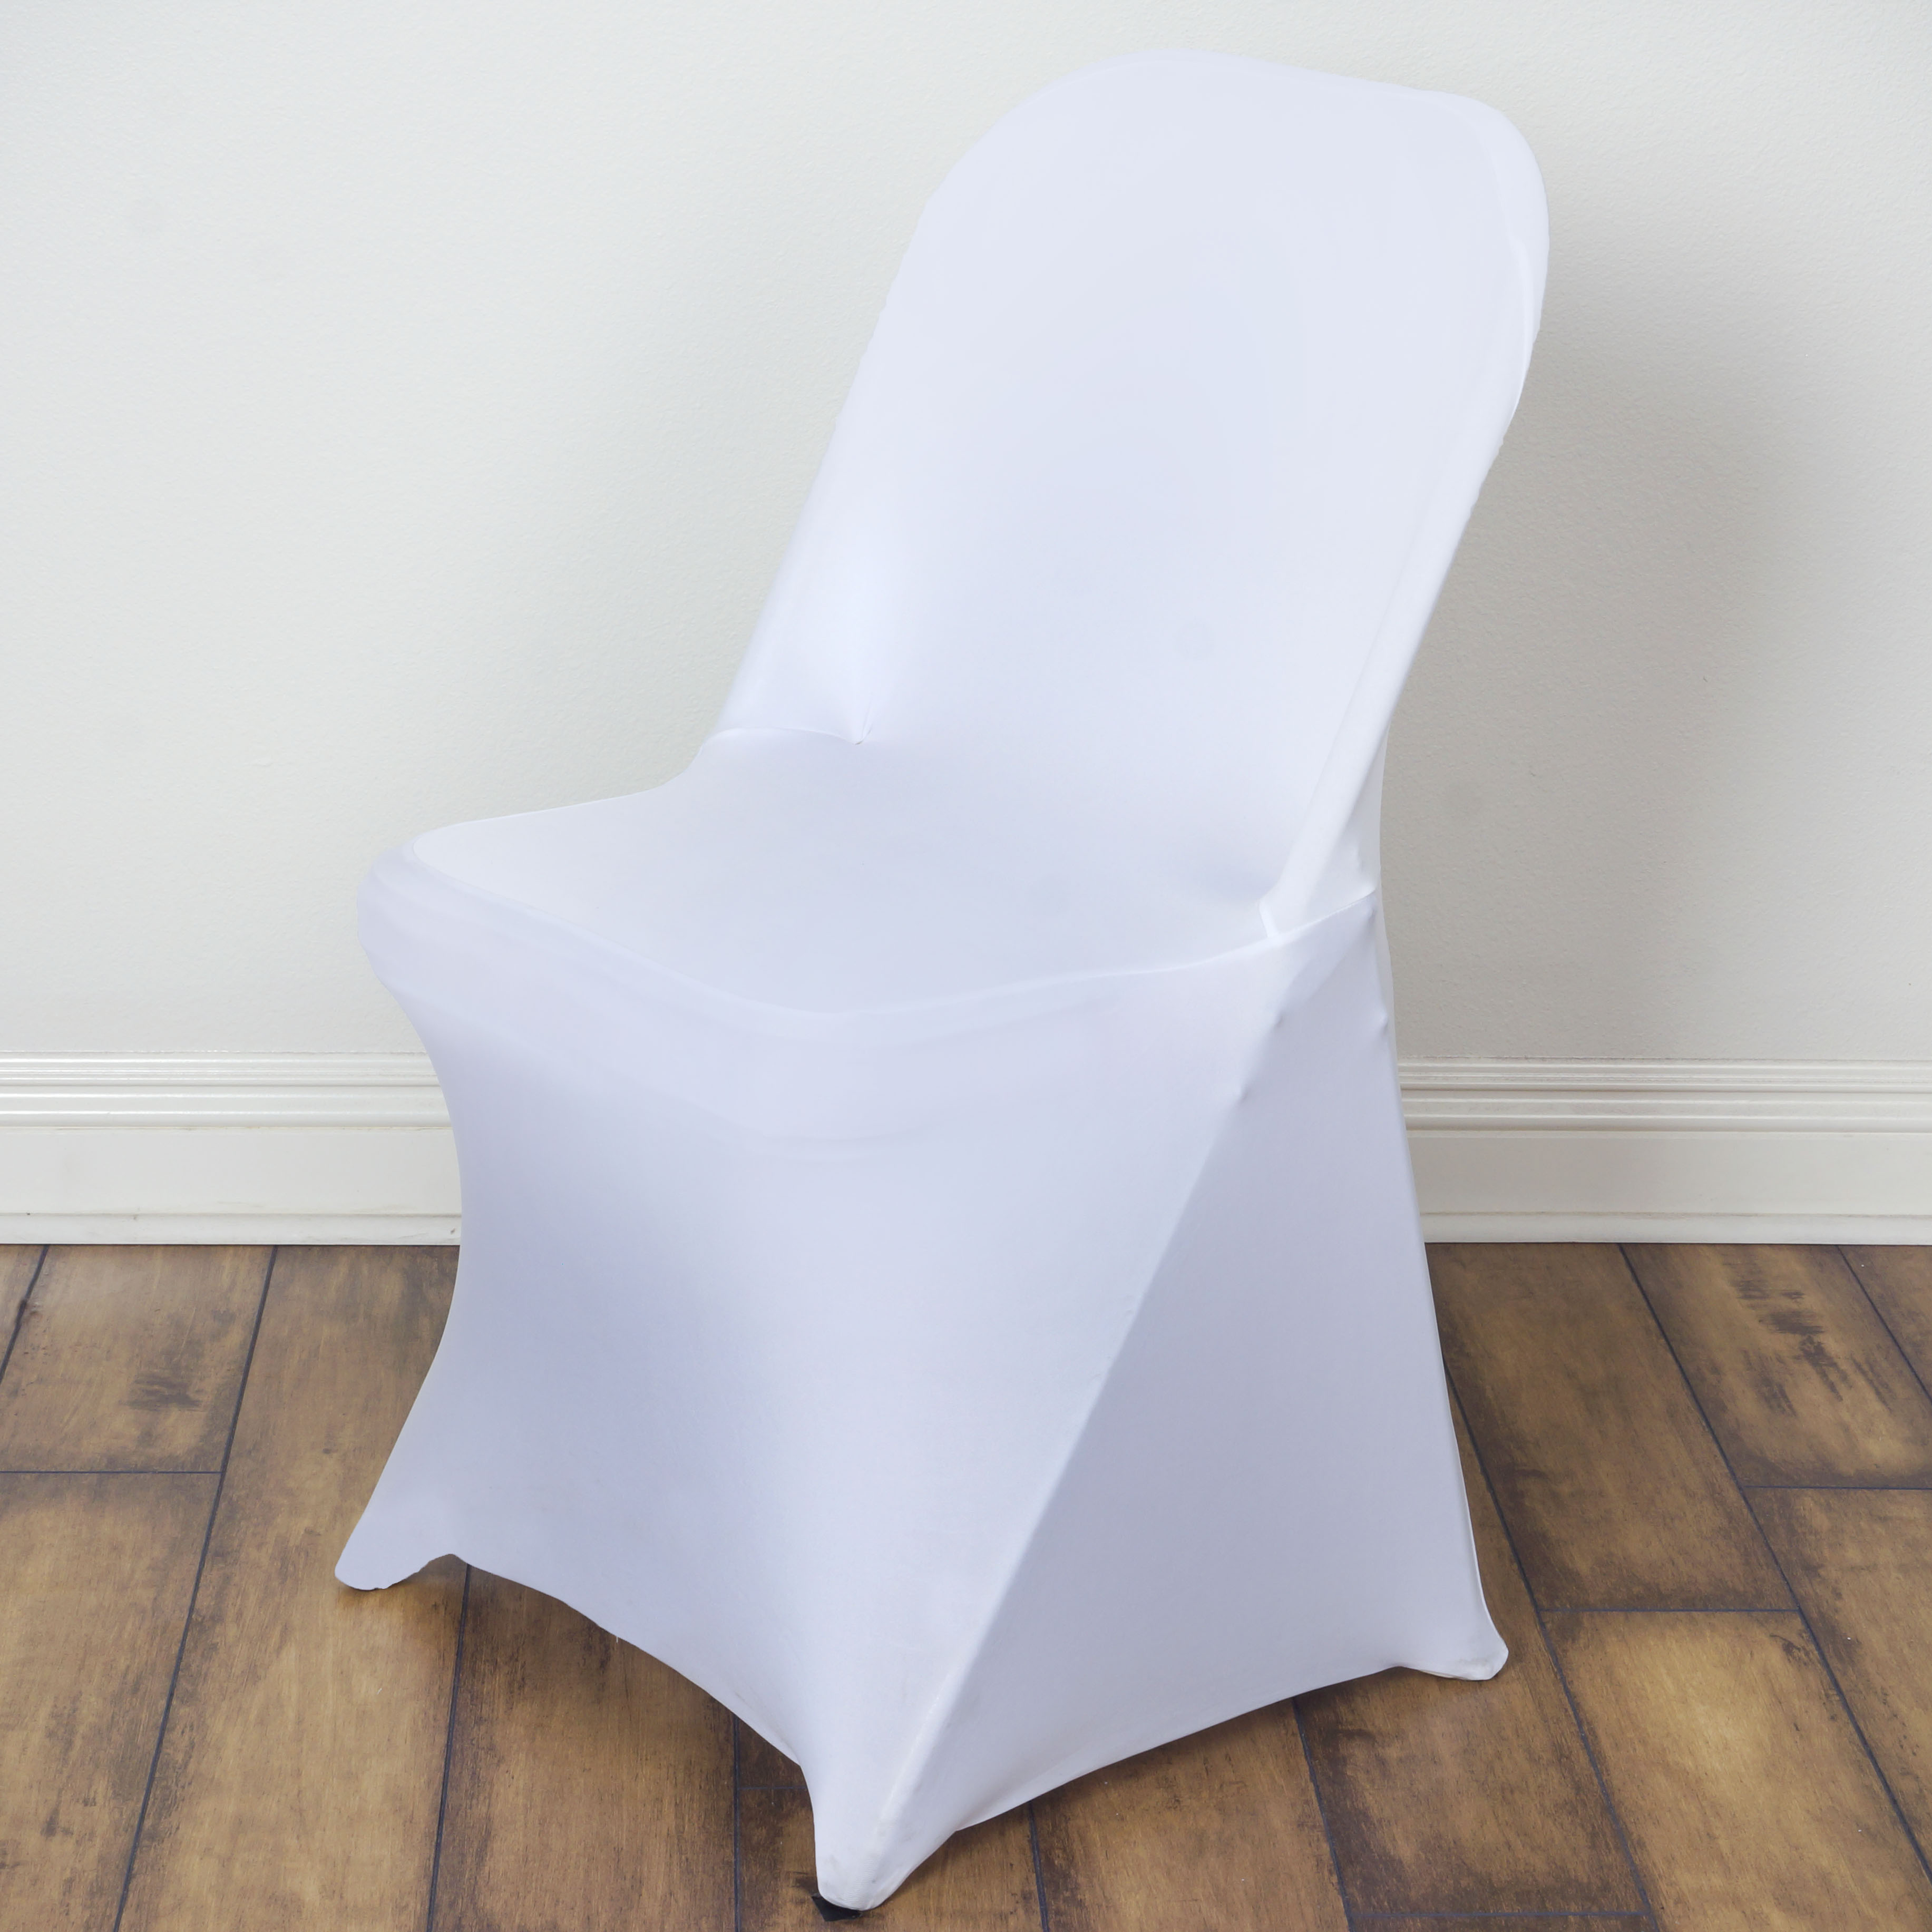 10 White Folding Stretch Spandex Chair Covers Event Banquet Party Decorations Ebay